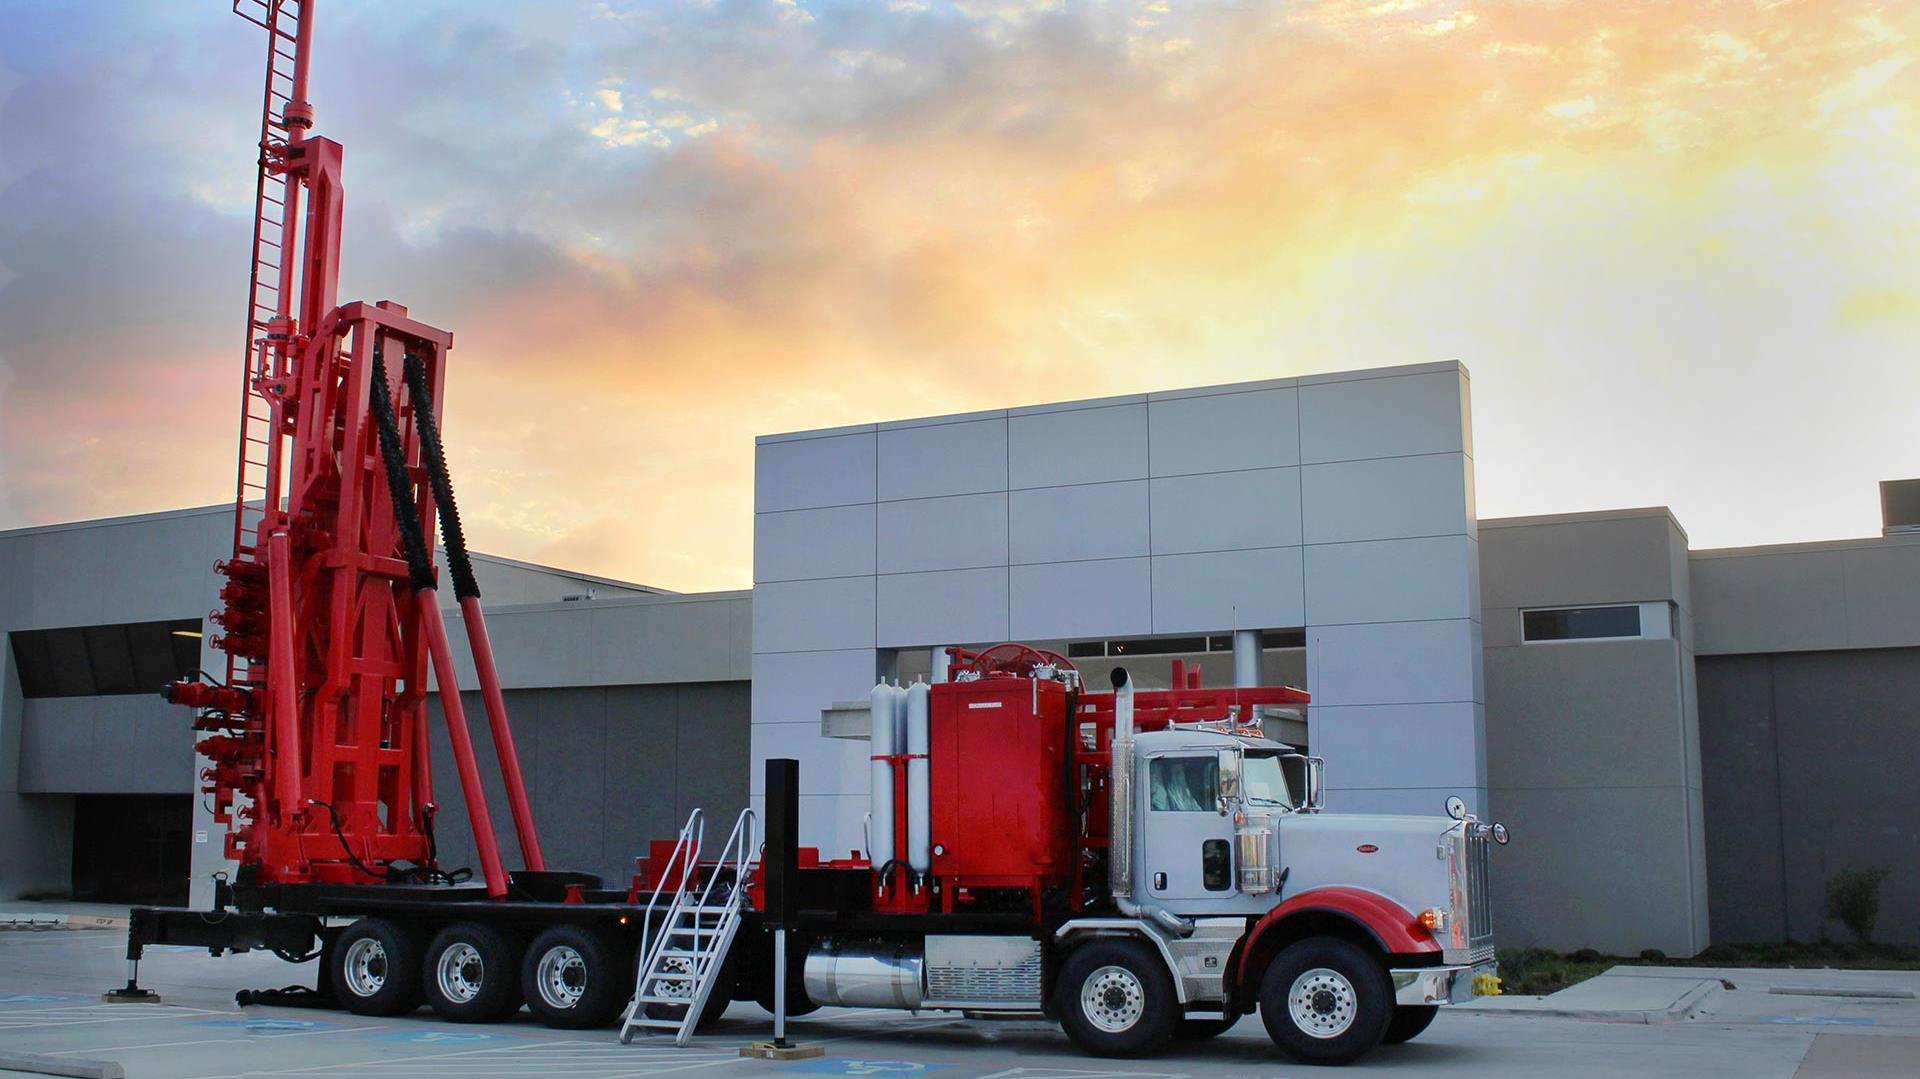 An erected Hydra Rig BOP Handler parked in front of a building